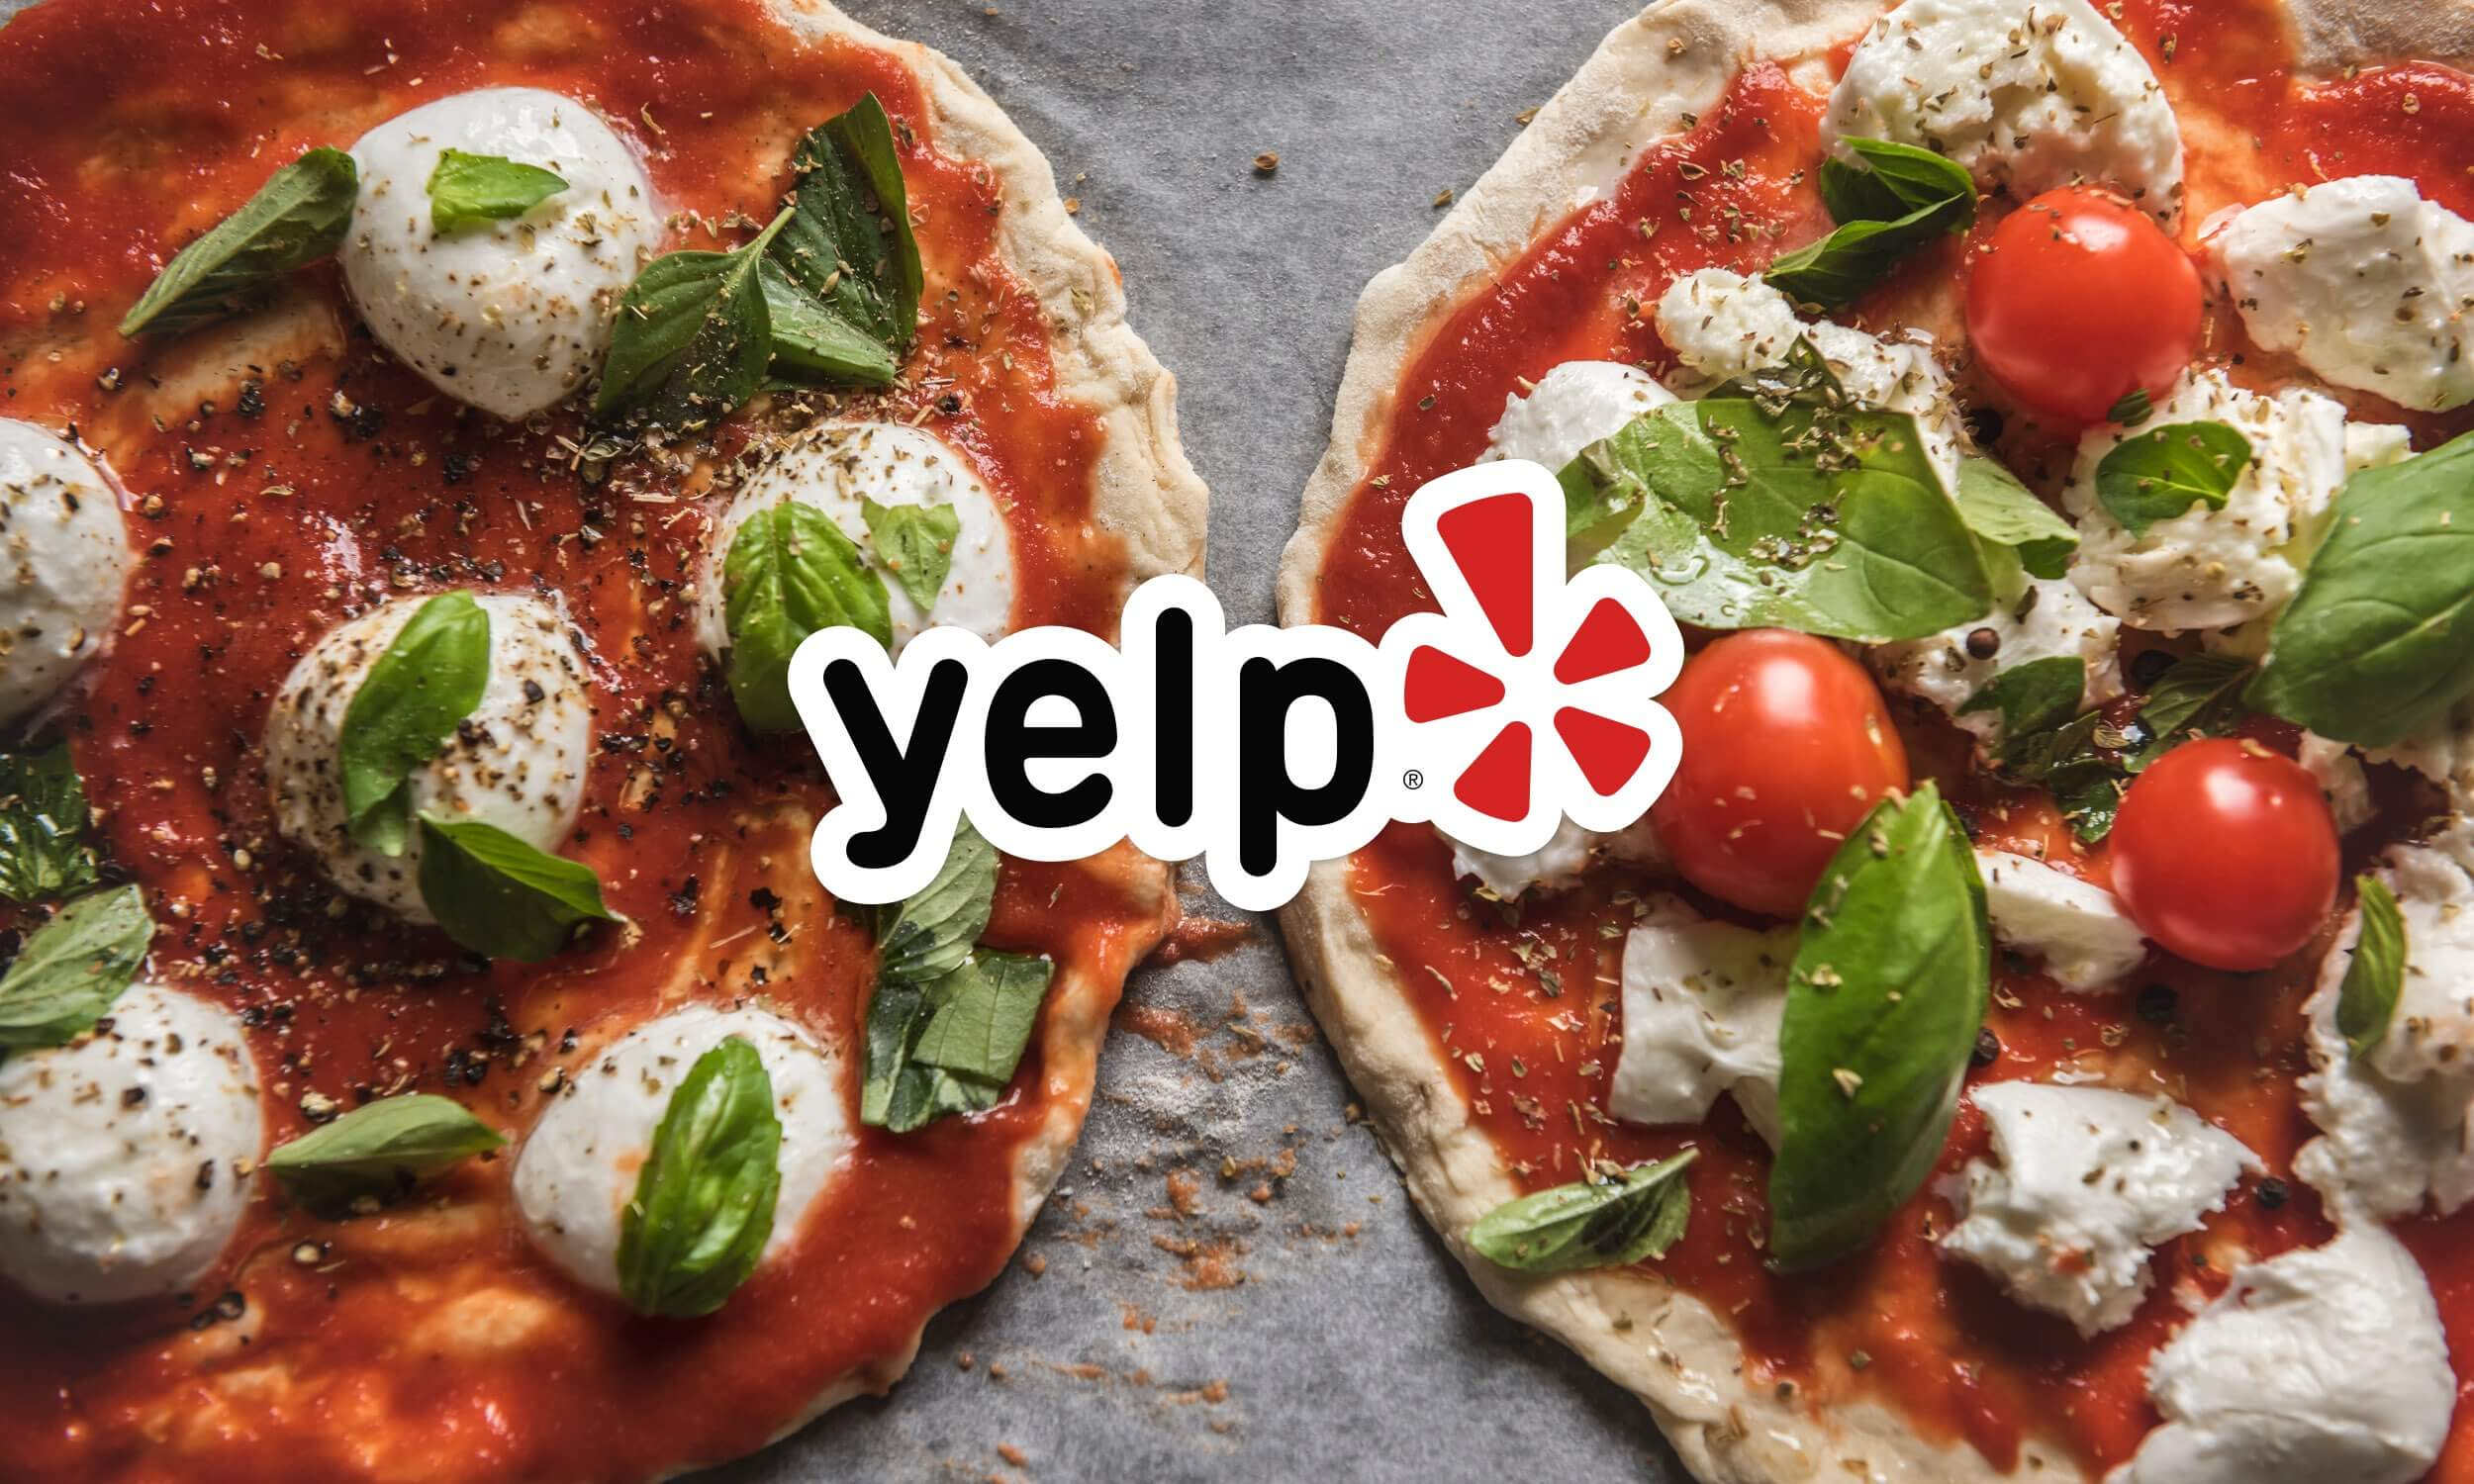 Need more reviews for your restaurant? We have good news and bad news. The bad news is that there's no magic formula that will miraculously fill your Yelp and Facebook profiles with 5-star reviews.